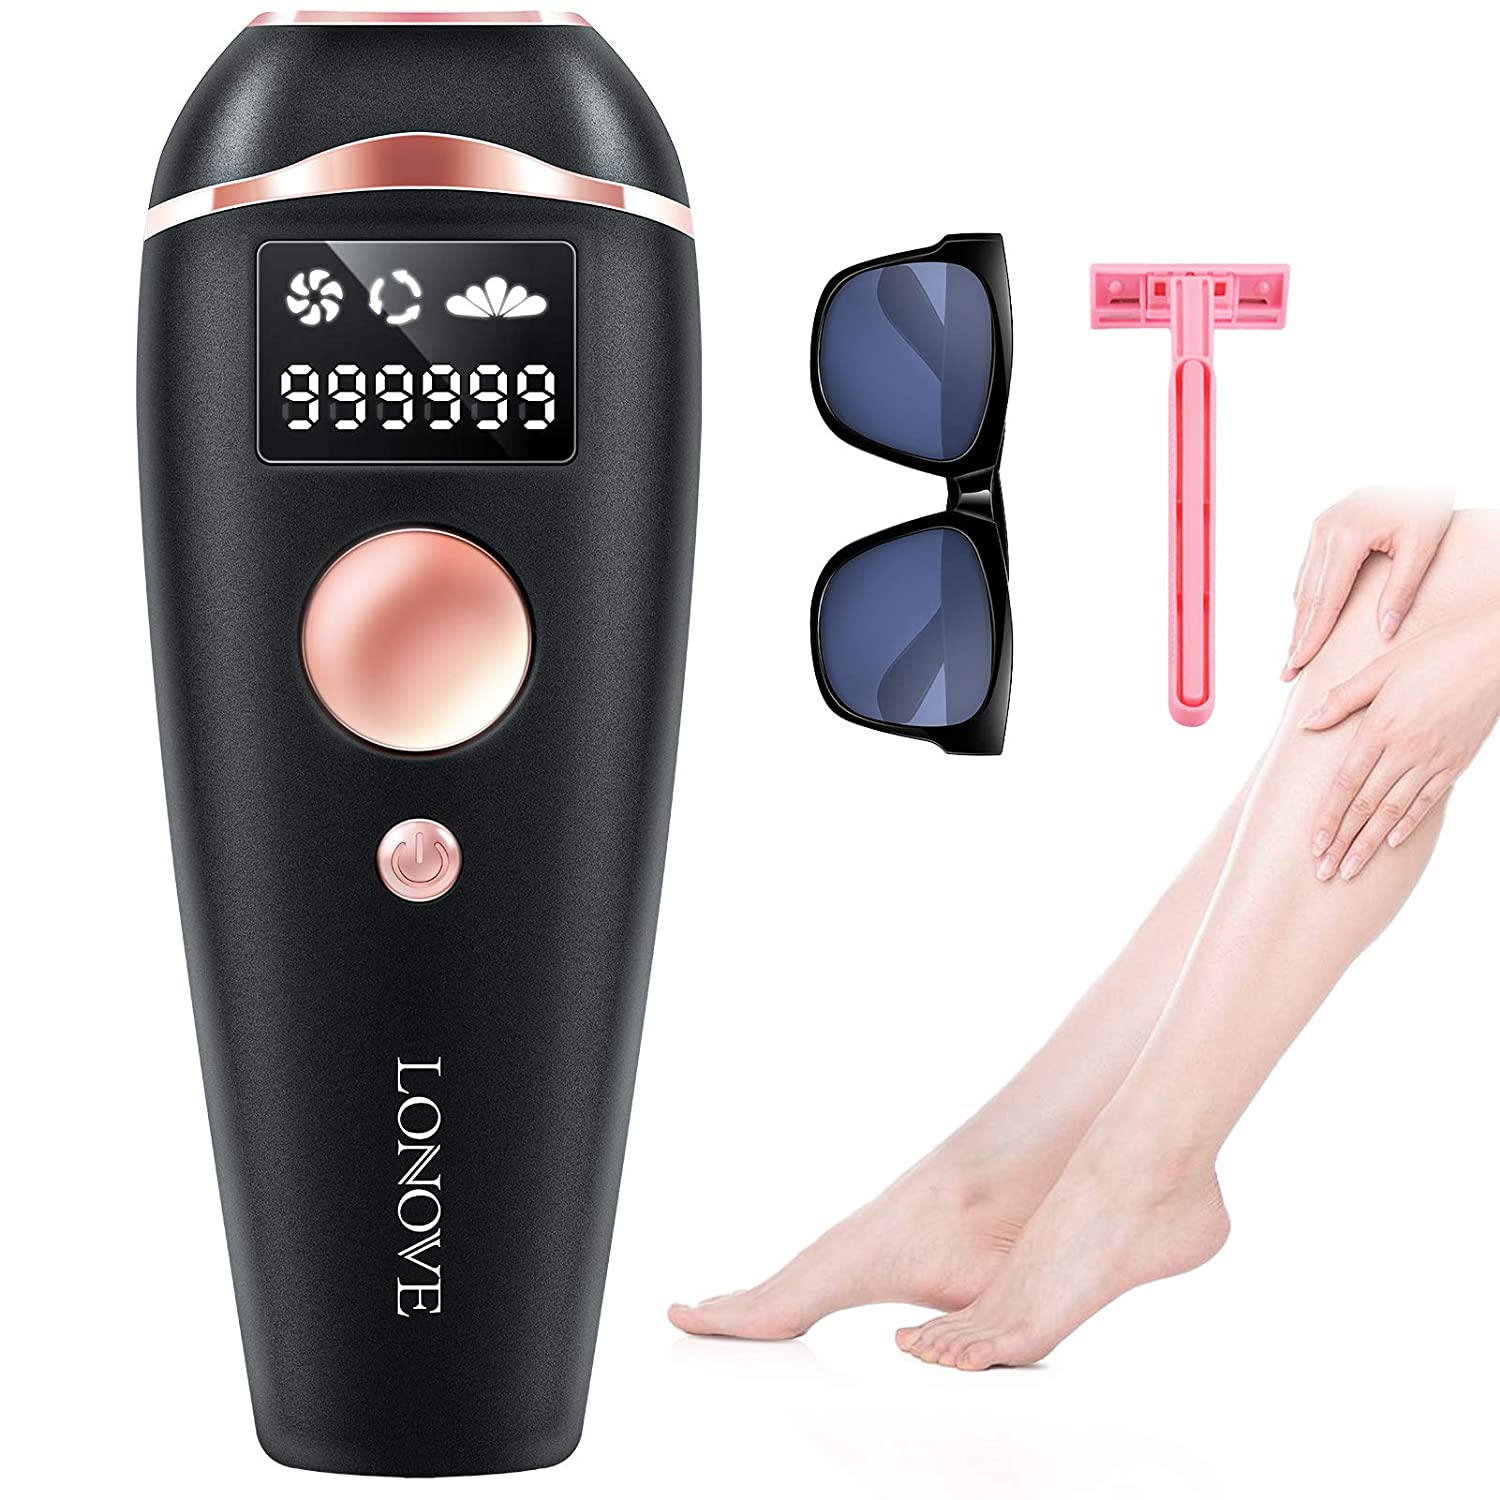 IPL Hair Removal for Women and Men, Permanent At Home Laser Hair Removal Upgraded 999,999 Flashes Painless Hair Remover Device for Facial Legs Arms Armpits Body At-Home Use